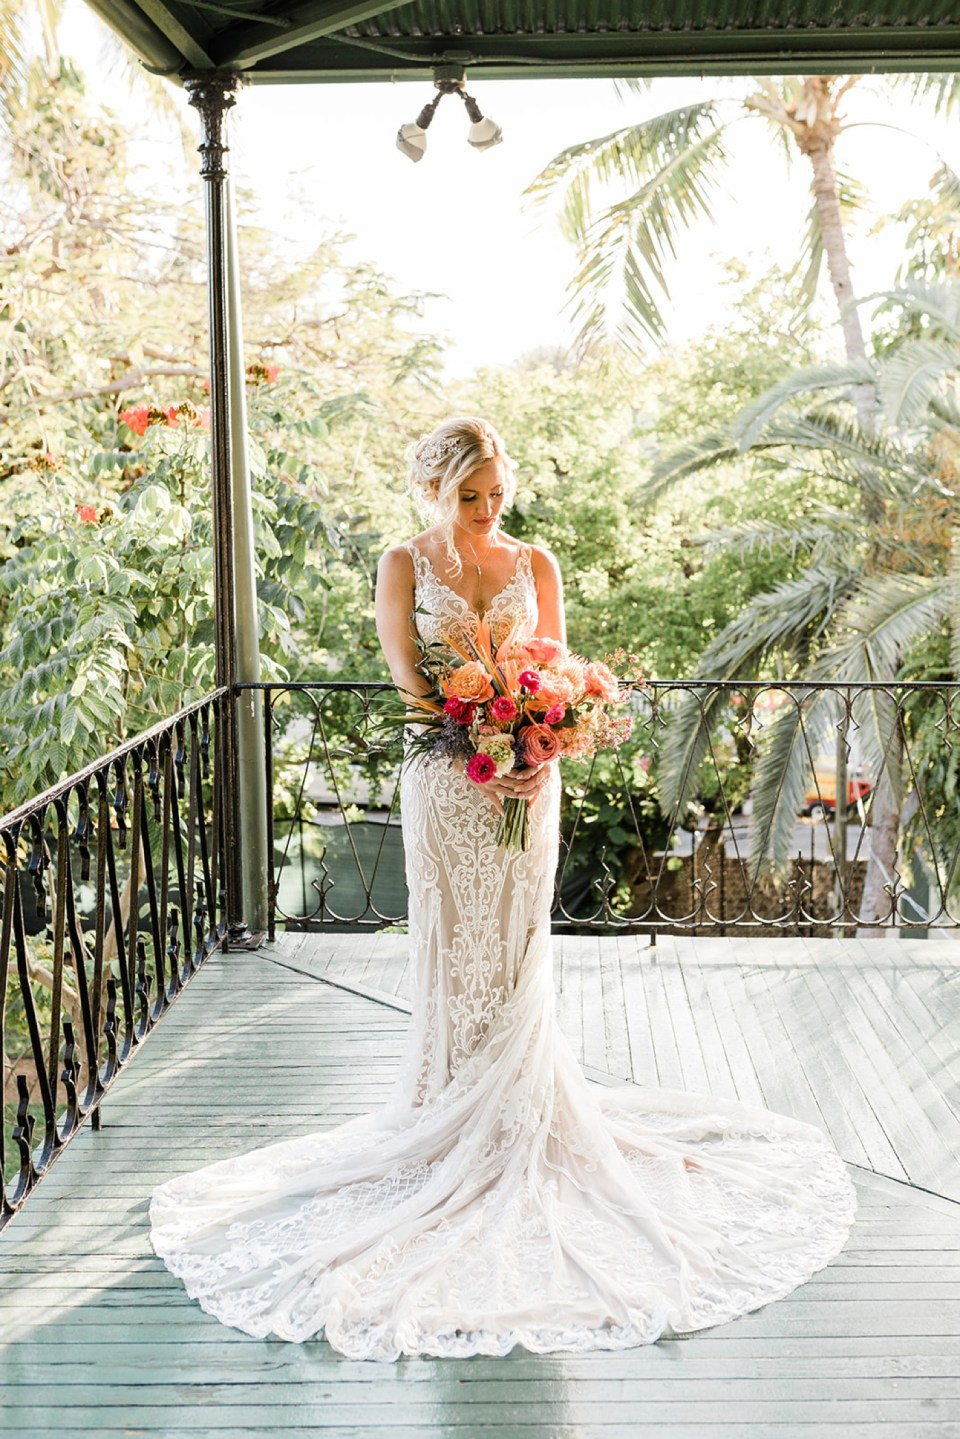 Bride in the Viola lace gown by Watters